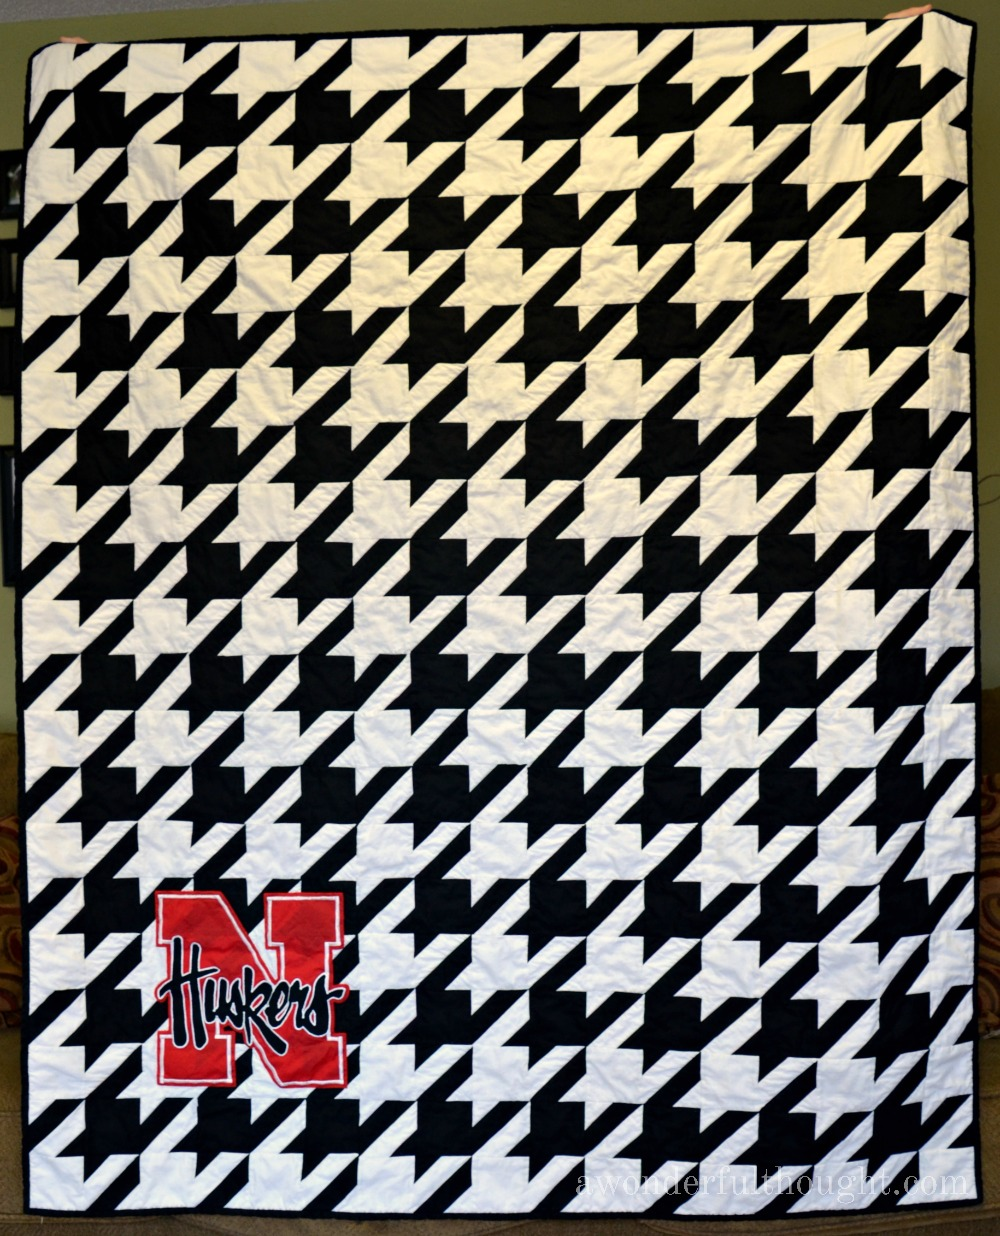 Huskers Houndstooth Quilt Pattern - A Wonderful Thought : houndstooth quilt pattern - Adamdwight.com